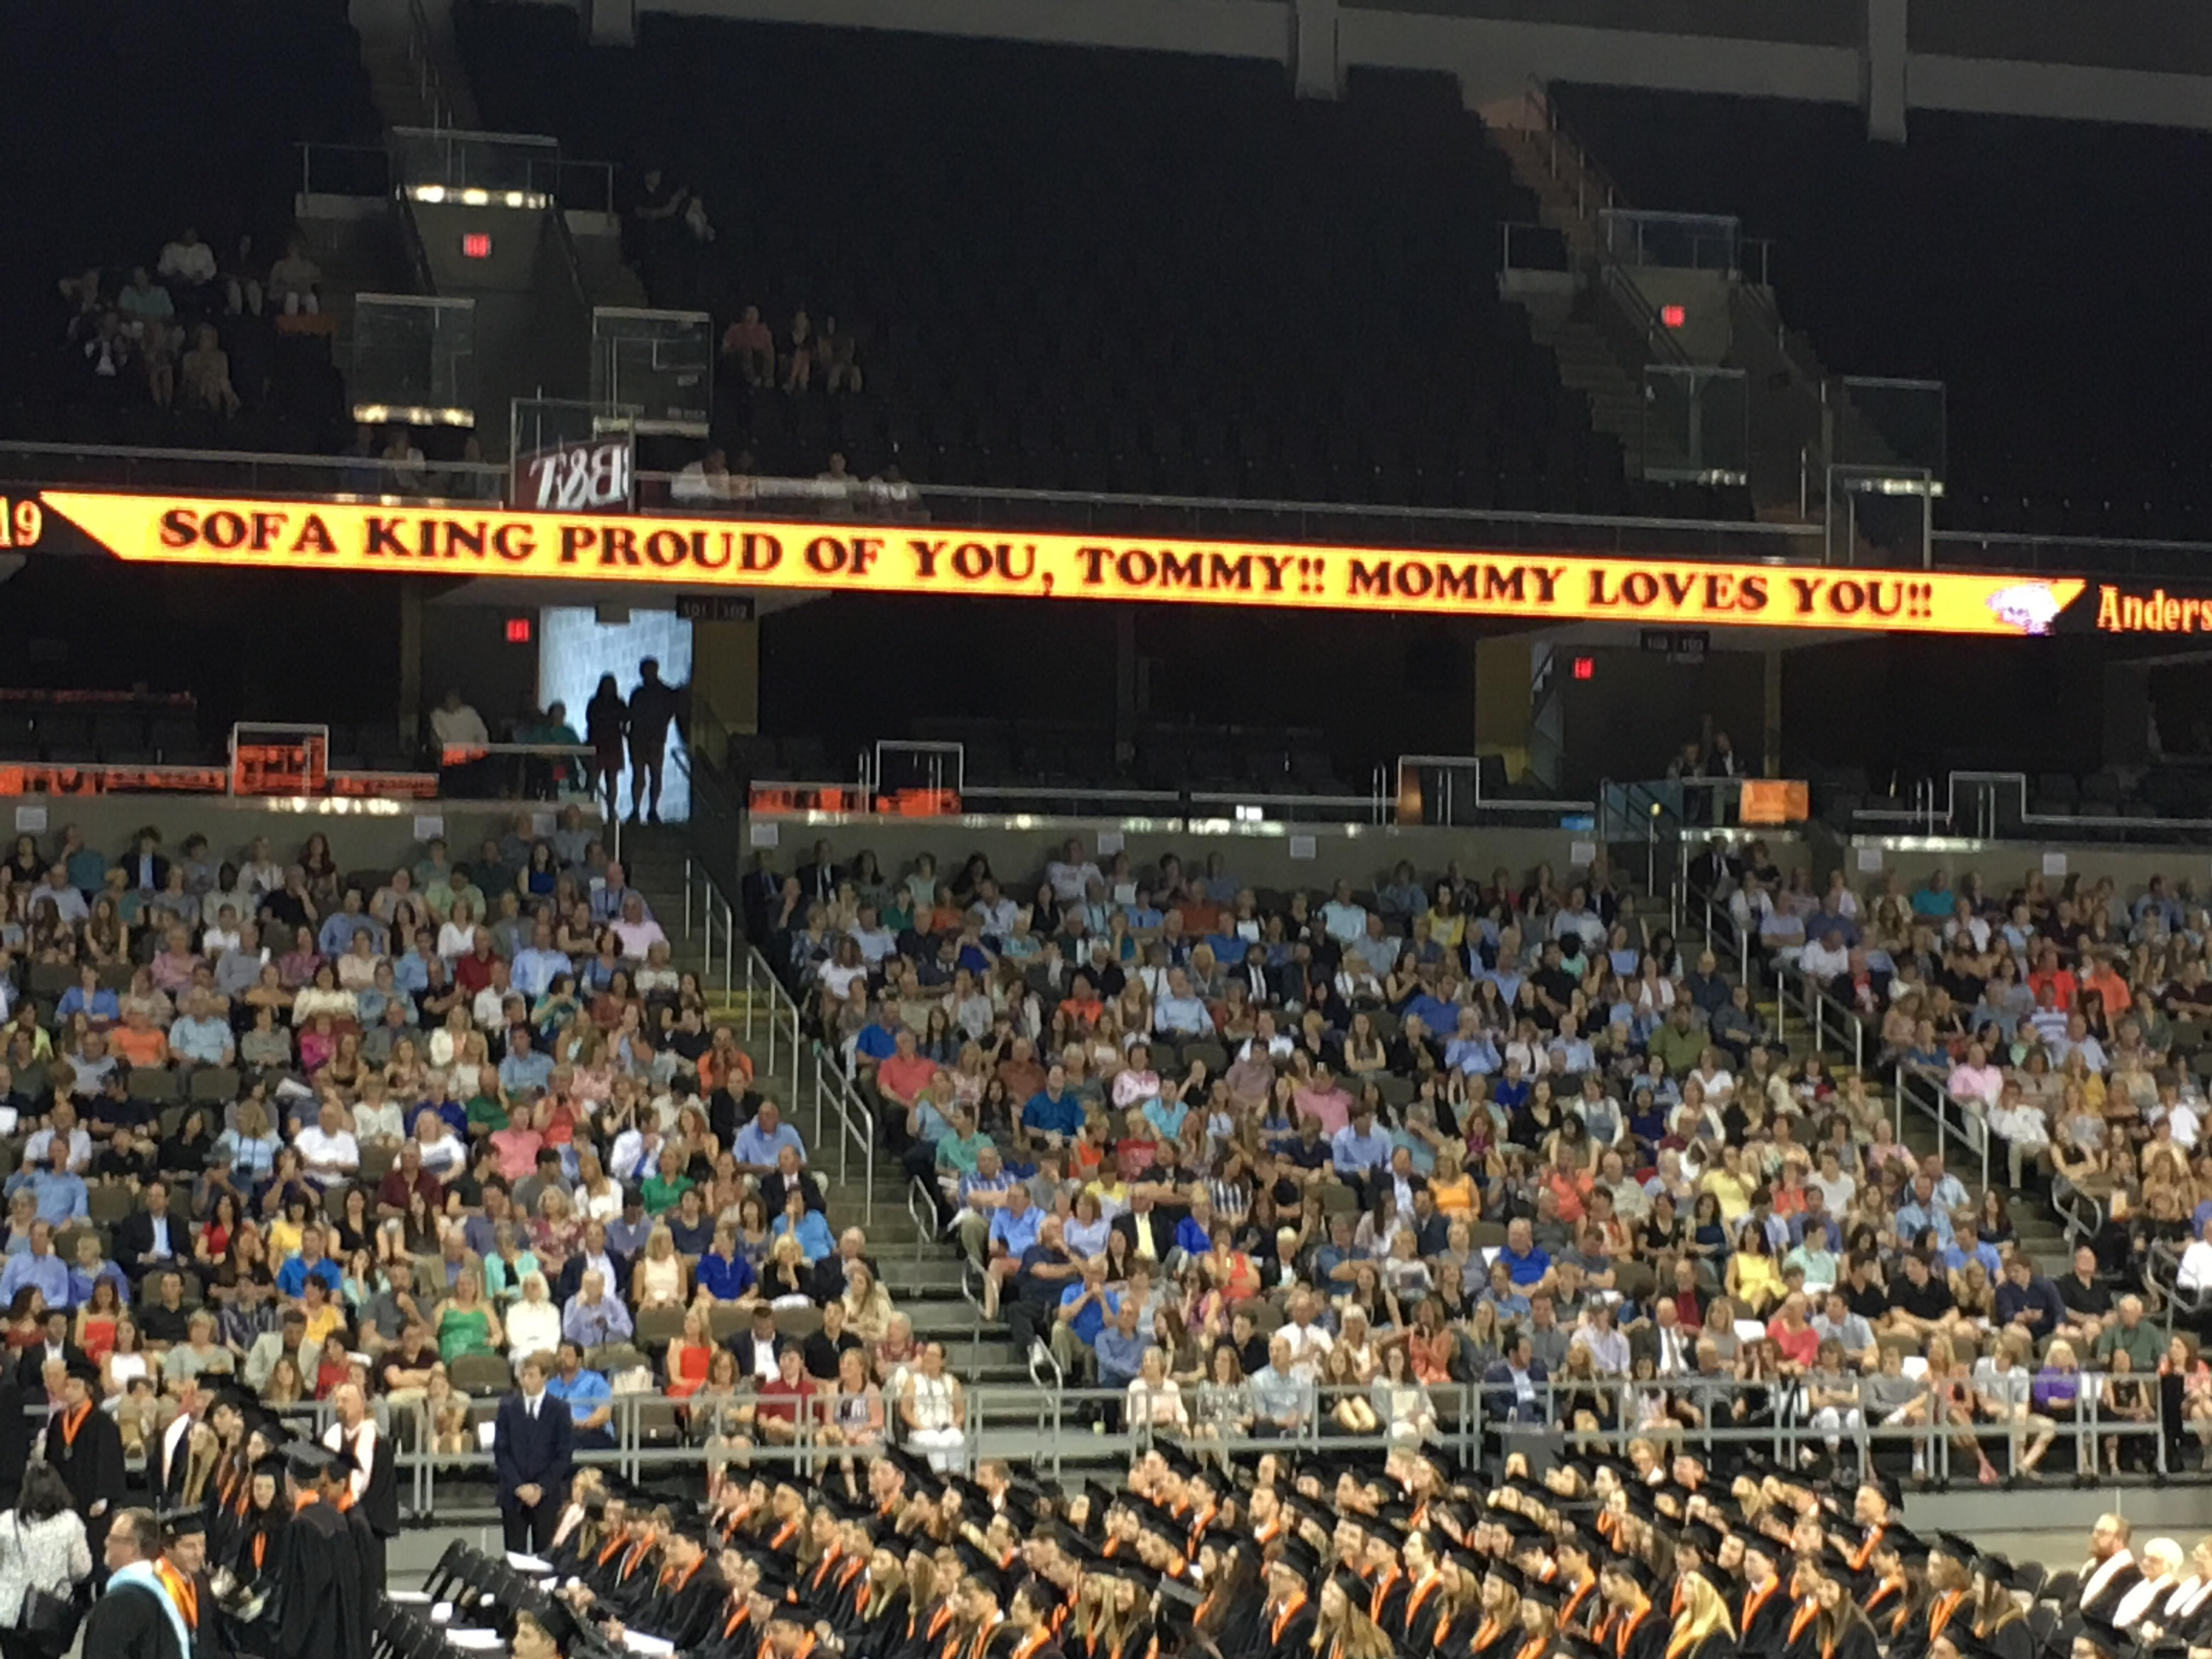 High school graduation allowed parents to send personalized messages on the ticker in the arena. This rotated through every 8 minutes.